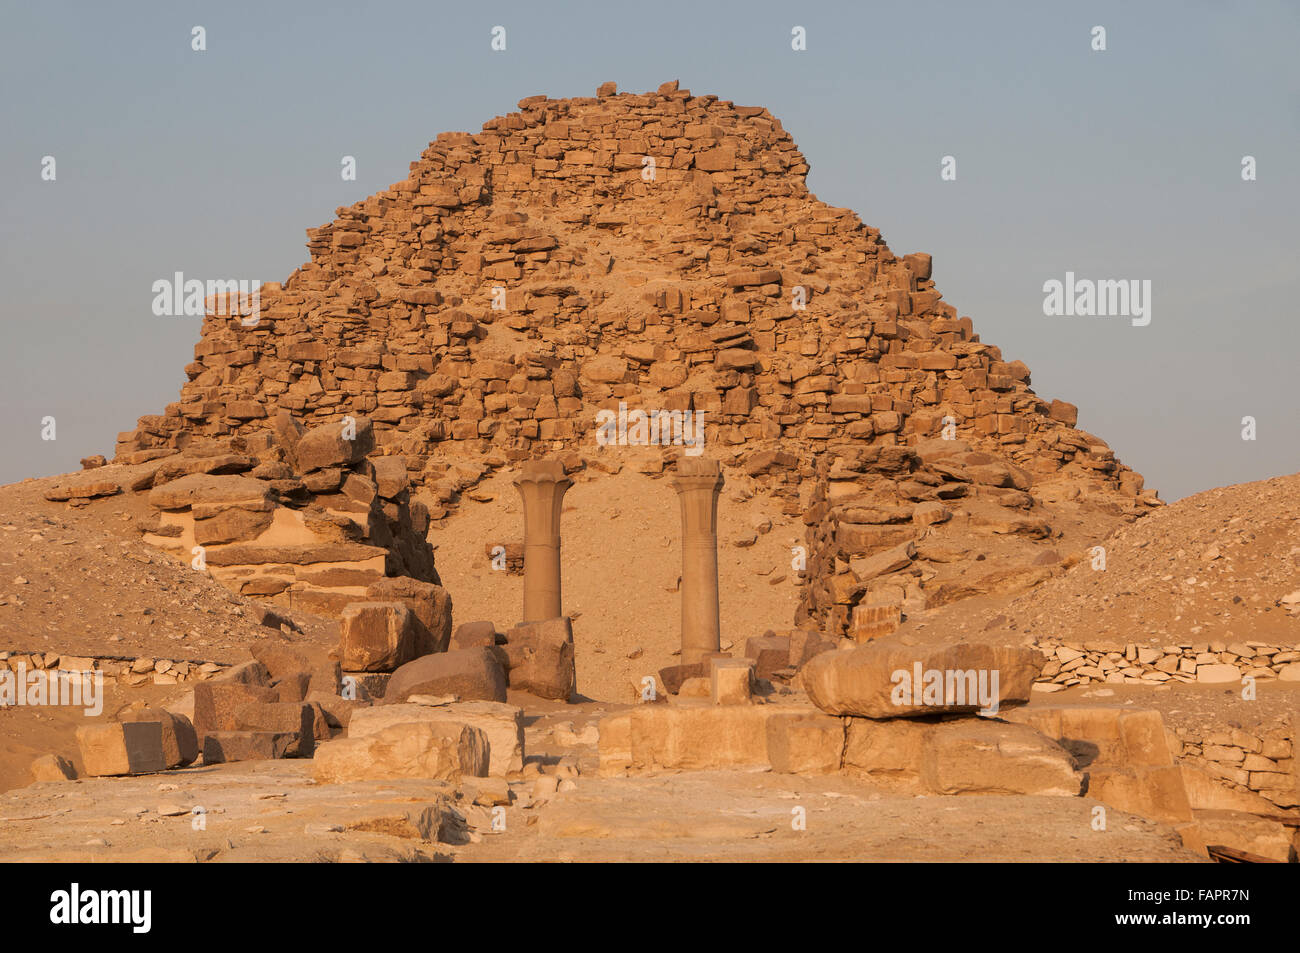 View of the Sun Temple of Userkaf for the pharaoh Userkaf founder of the 5th dynasty of Egypt (c. 2494–2345 BC) - Stock Image